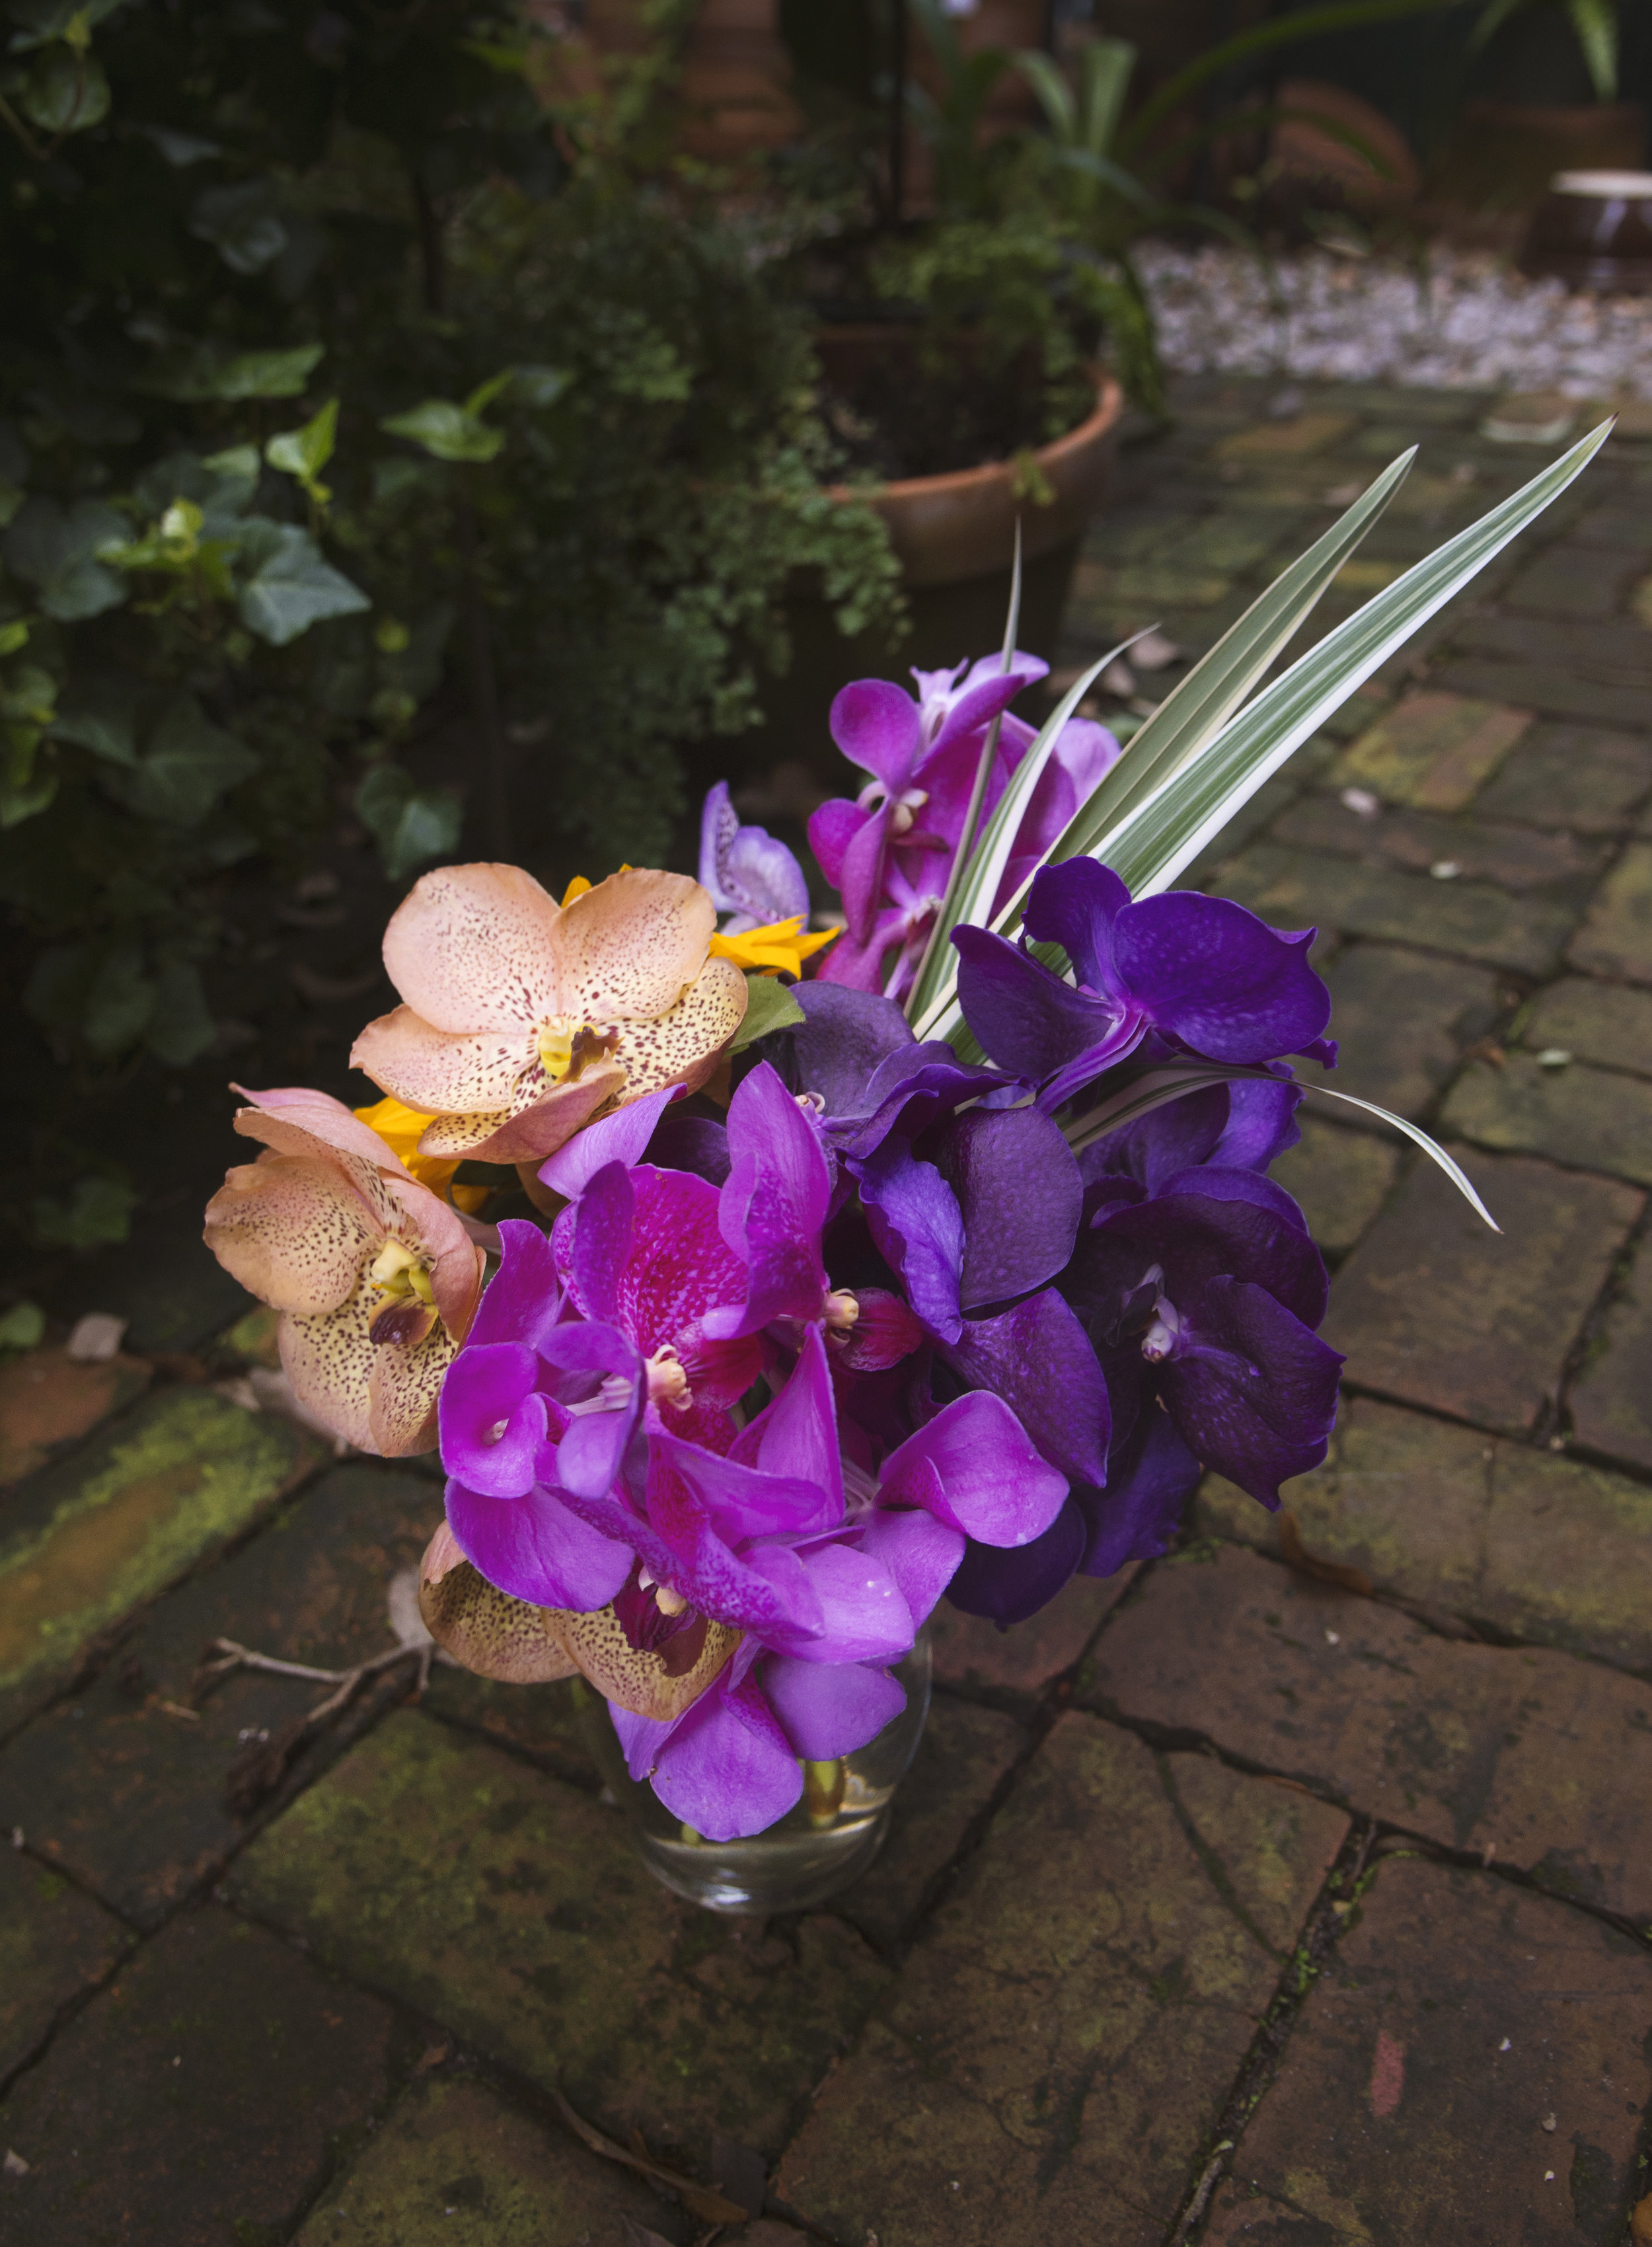 VANDA ORCHID mitchs flowers delivery near me new orleans stpehanie tarrant monique chauvin buckeye orchids VANDA ORCHID ARRANGEMENT.jpg